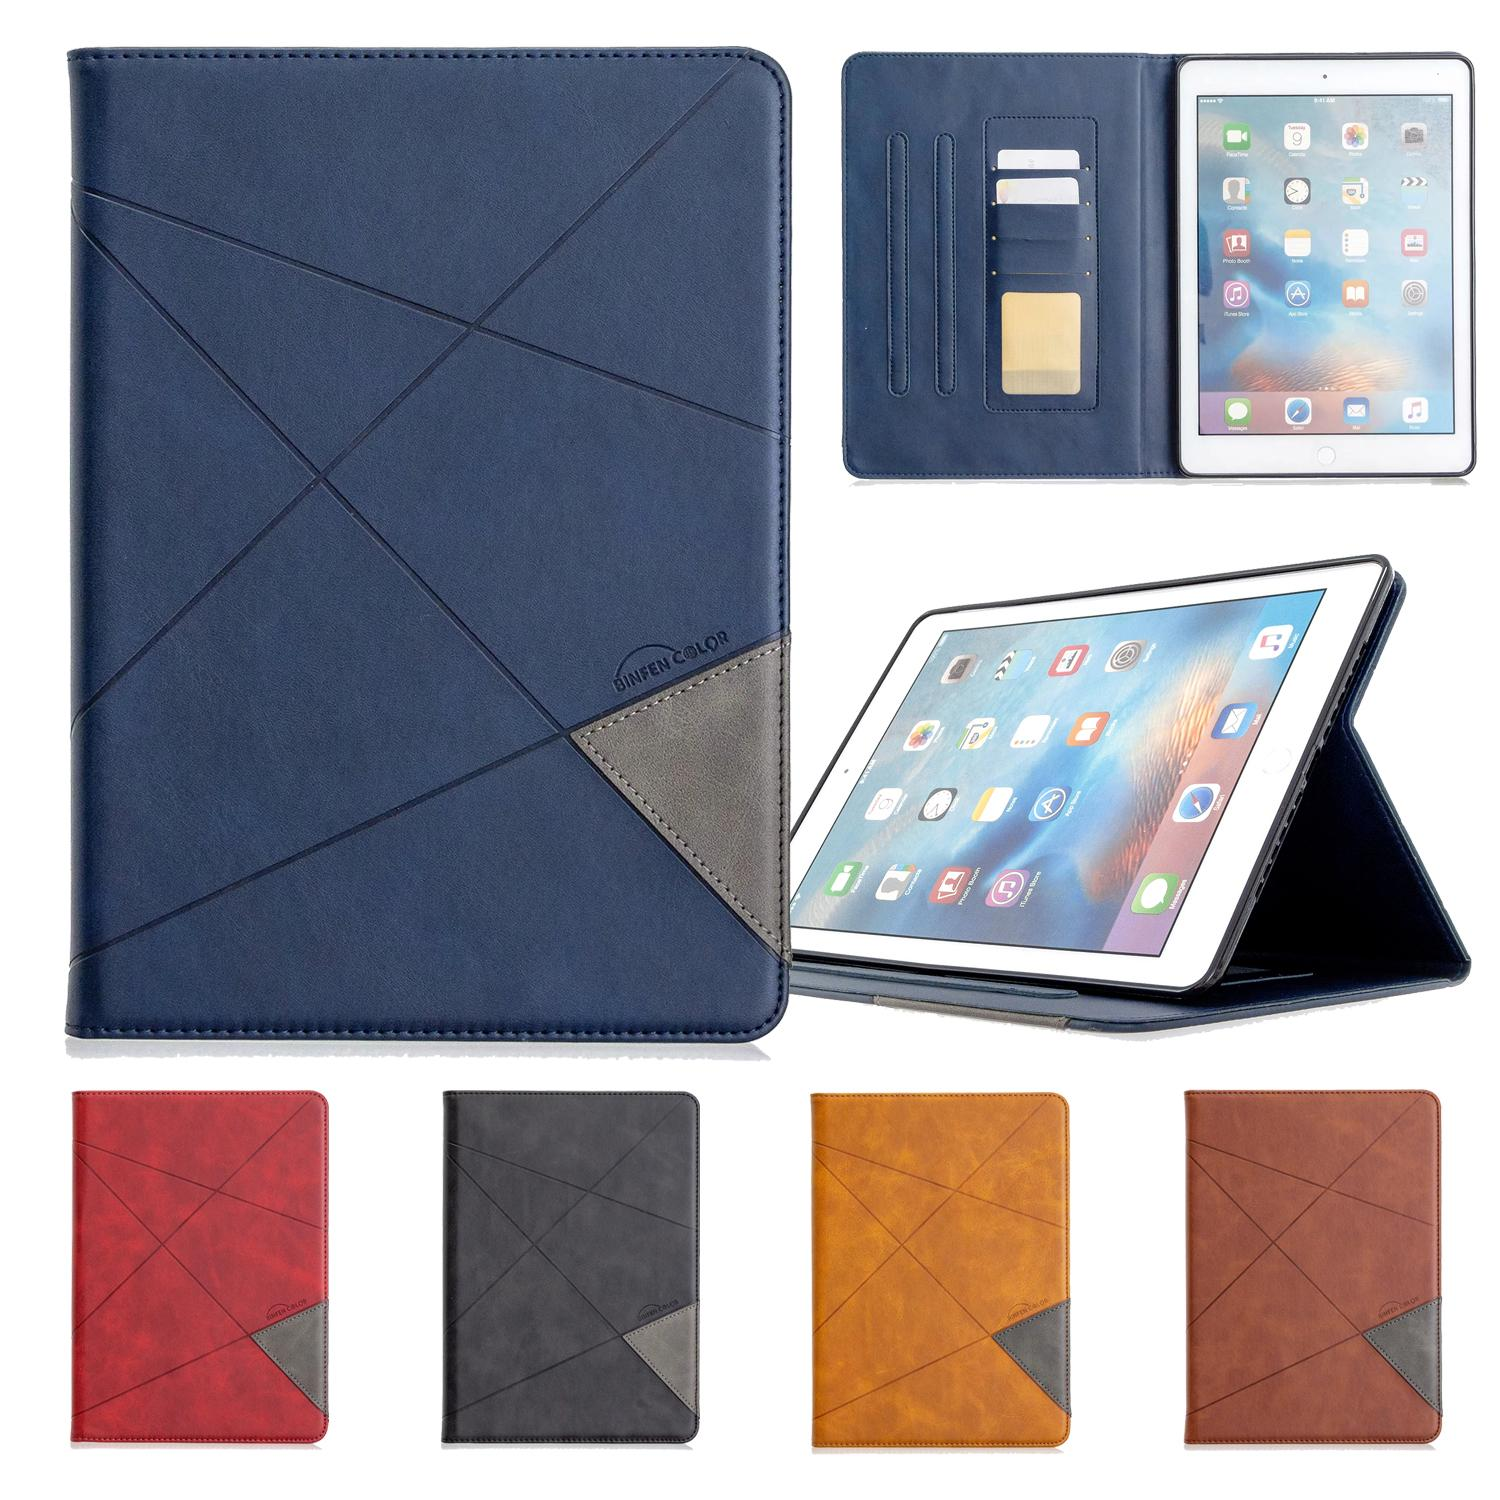 Leather Tablet Case for iPad Mini 1/2/3/4/5 iPad Pro 11 2019 iPad Air 1/2 9.7 2017/2018 Multi Card Slots Samsung Tab A 8.0 T290 Cover Case